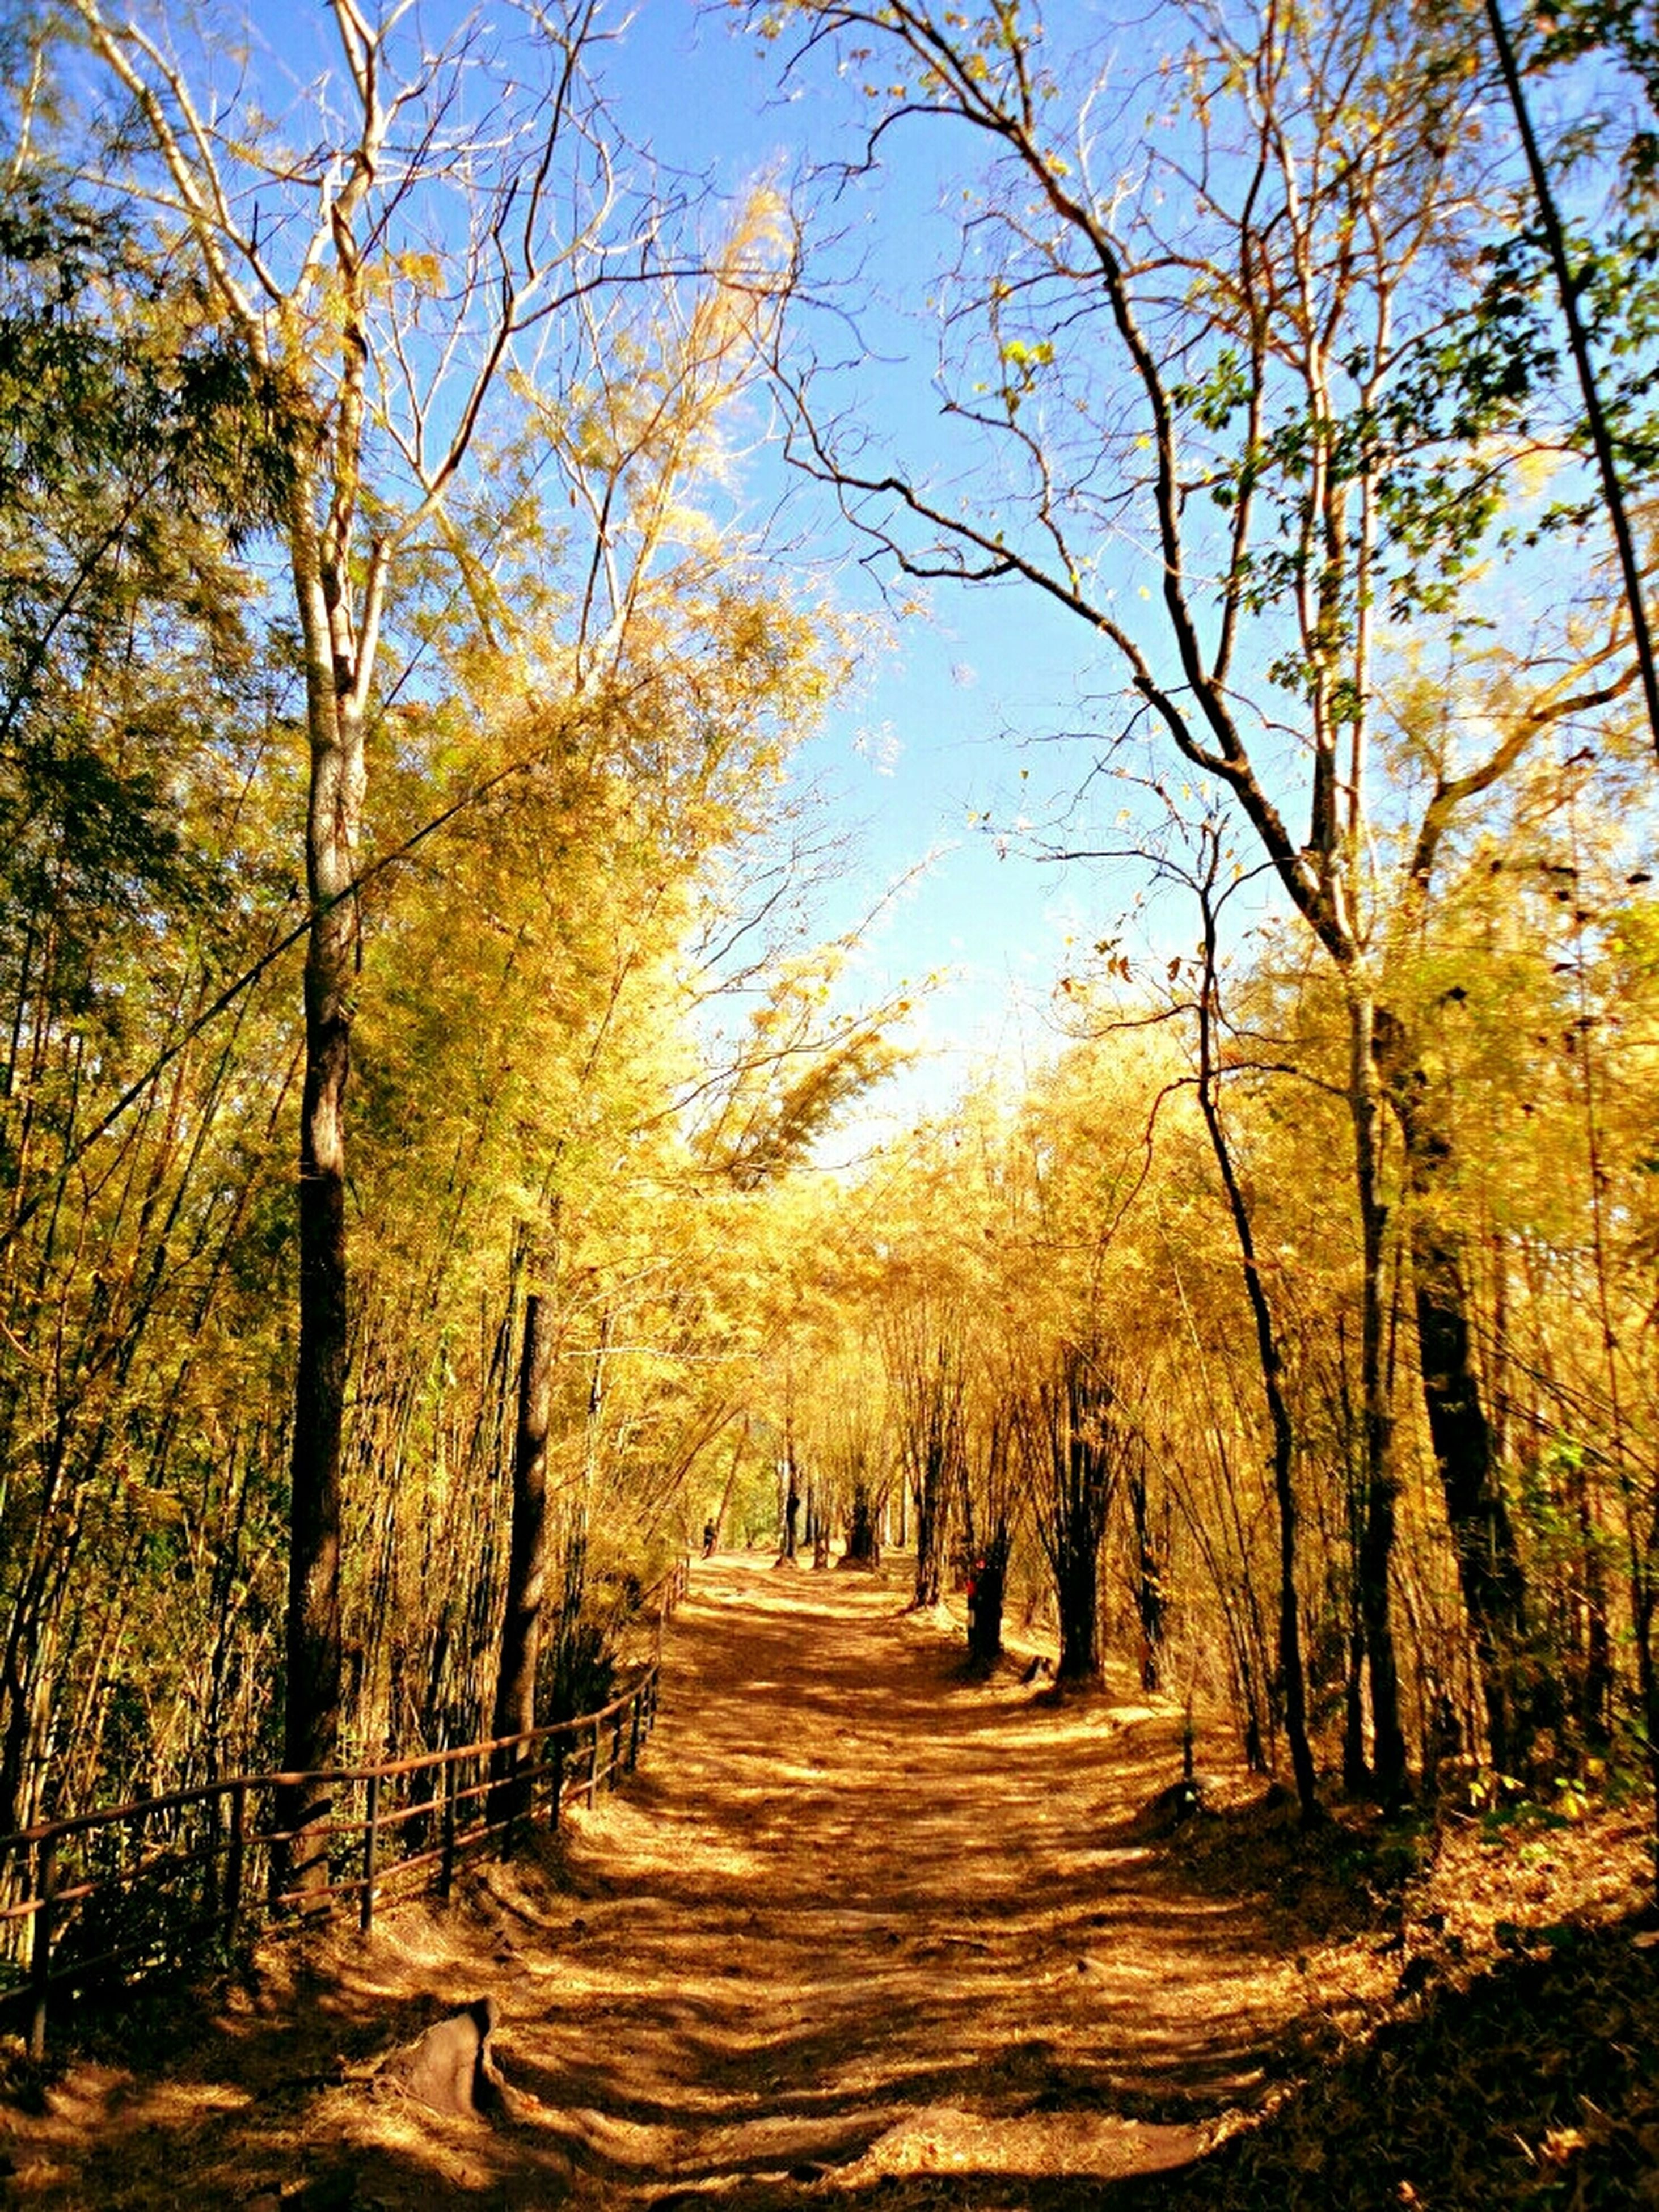 tree, the way forward, tranquility, tranquil scene, nature, growth, diminishing perspective, beauty in nature, branch, tree trunk, treelined, scenics, forest, vanishing point, footpath, clear sky, autumn, dirt road, sunlight, landscape